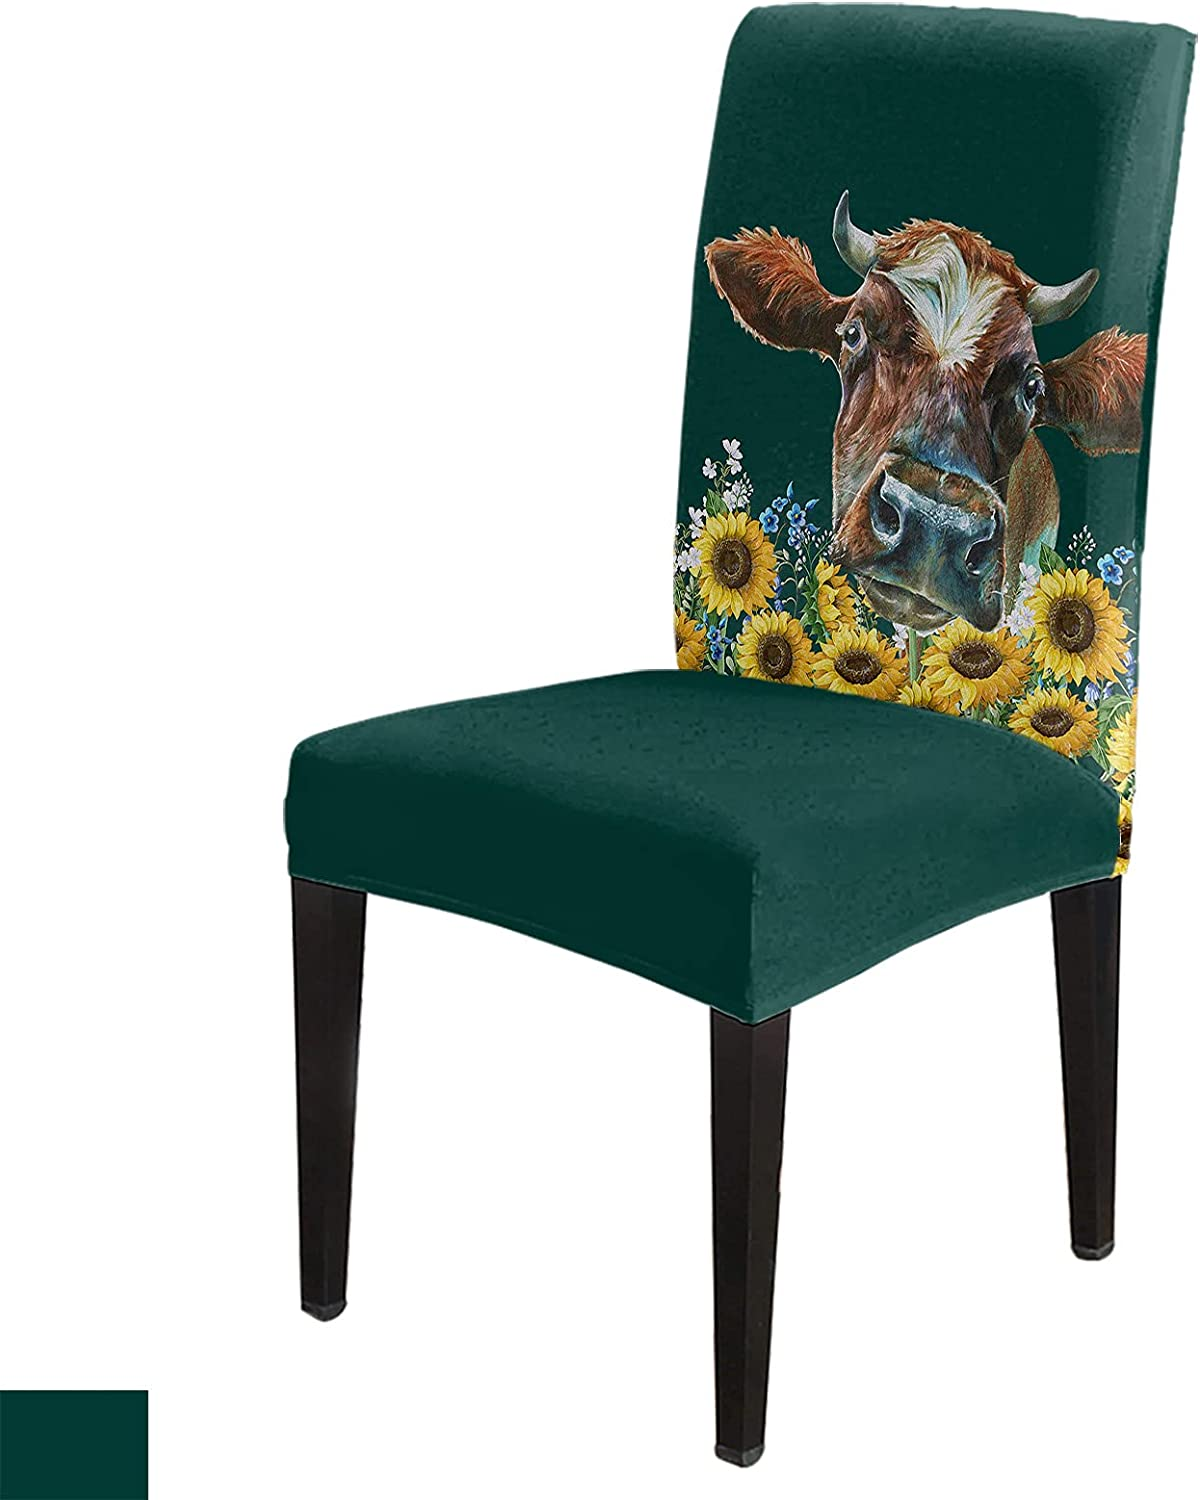 Spasm price Farm Animals Dining Chair 70% OFF Outlet Slipcover Removable Washable Cov Seat